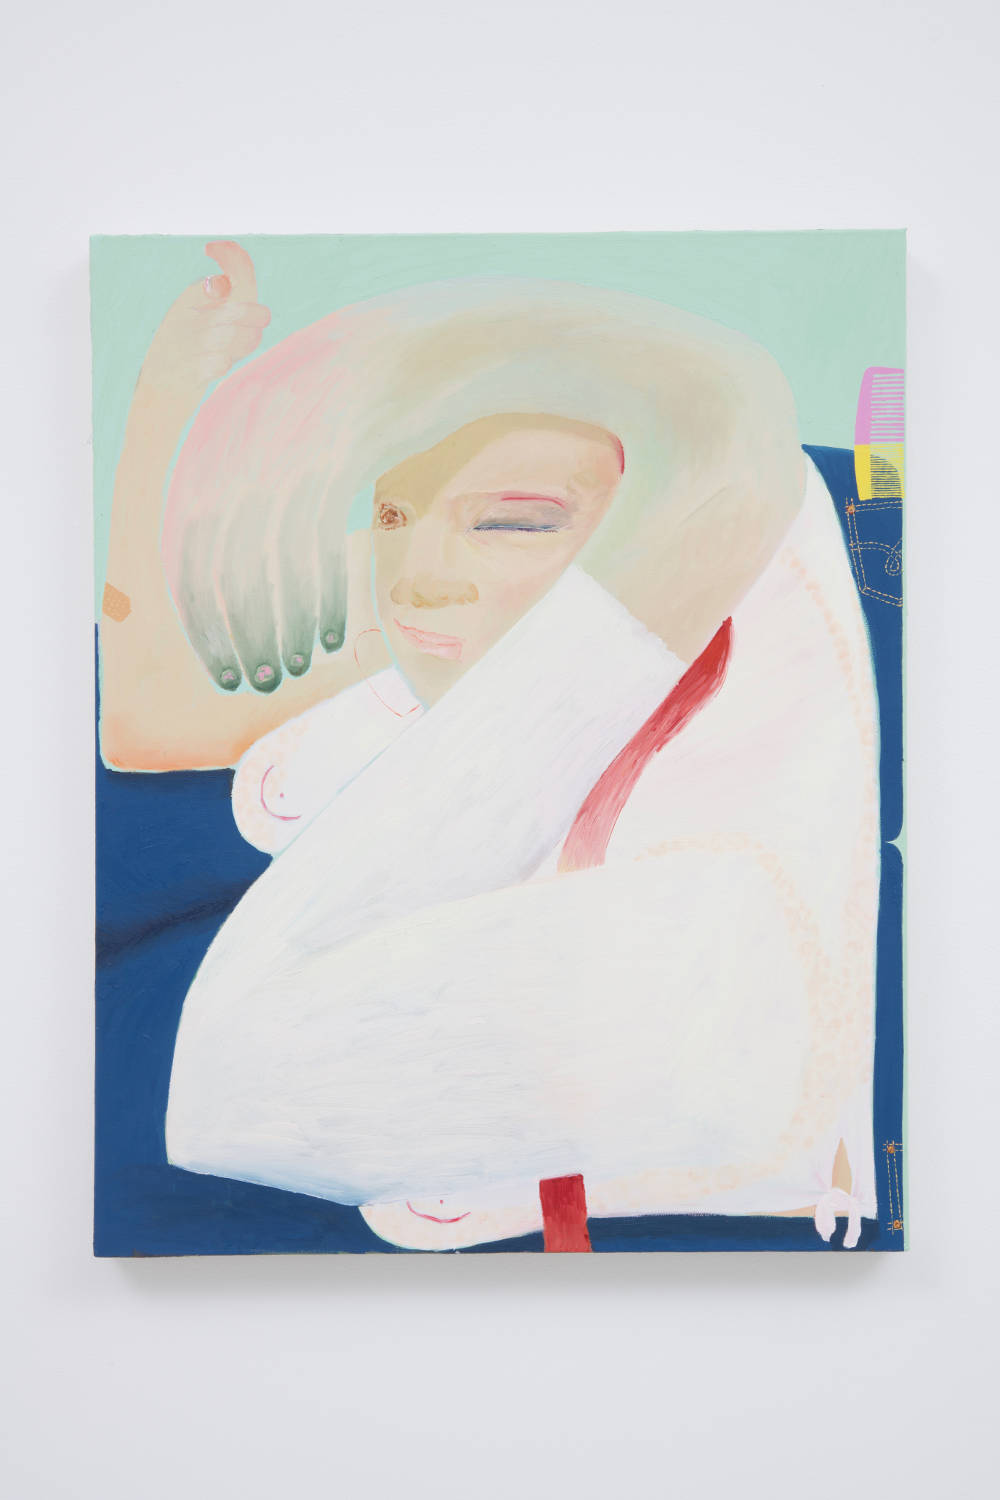 Celeste Rapone, Flirt, 2018. Oil on canvas 30 x 24 in (76.2 x 61.0 cm) Courtesy of the artist and Roberts Projects, Los Angeles, California. Photo Robert Wedemeyer